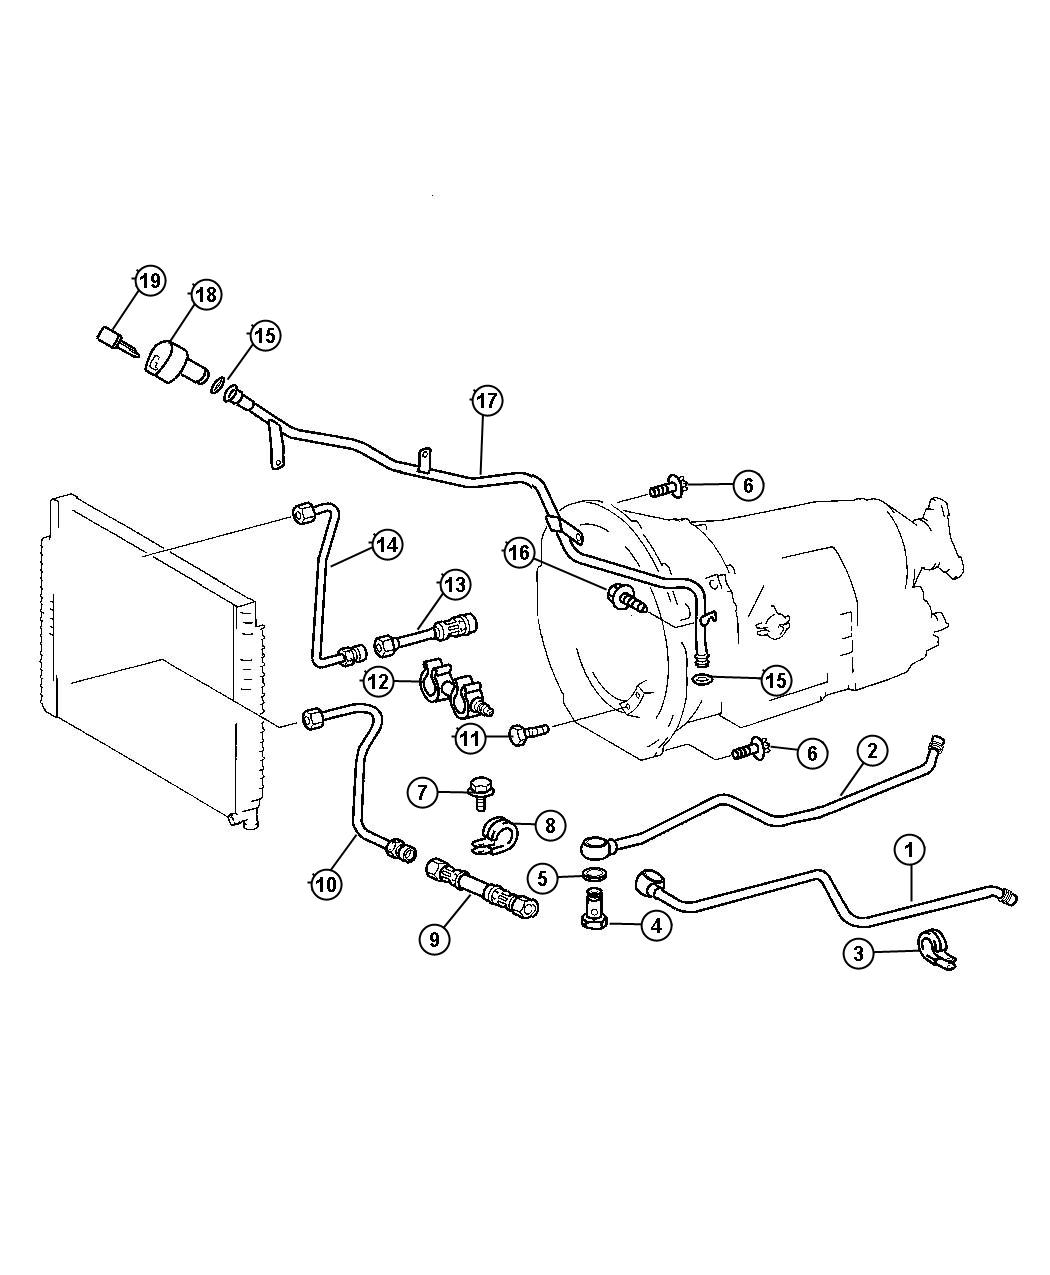 ShowAssembly furthermore 206807626 Chrysler Sebring 2008 2010 Convertible Parts Manual additionally Dodge Switch 5080457aa further ShowAssembly further Mopar Hub Assembly 68026068ac. on genuine dodge sprinter parts